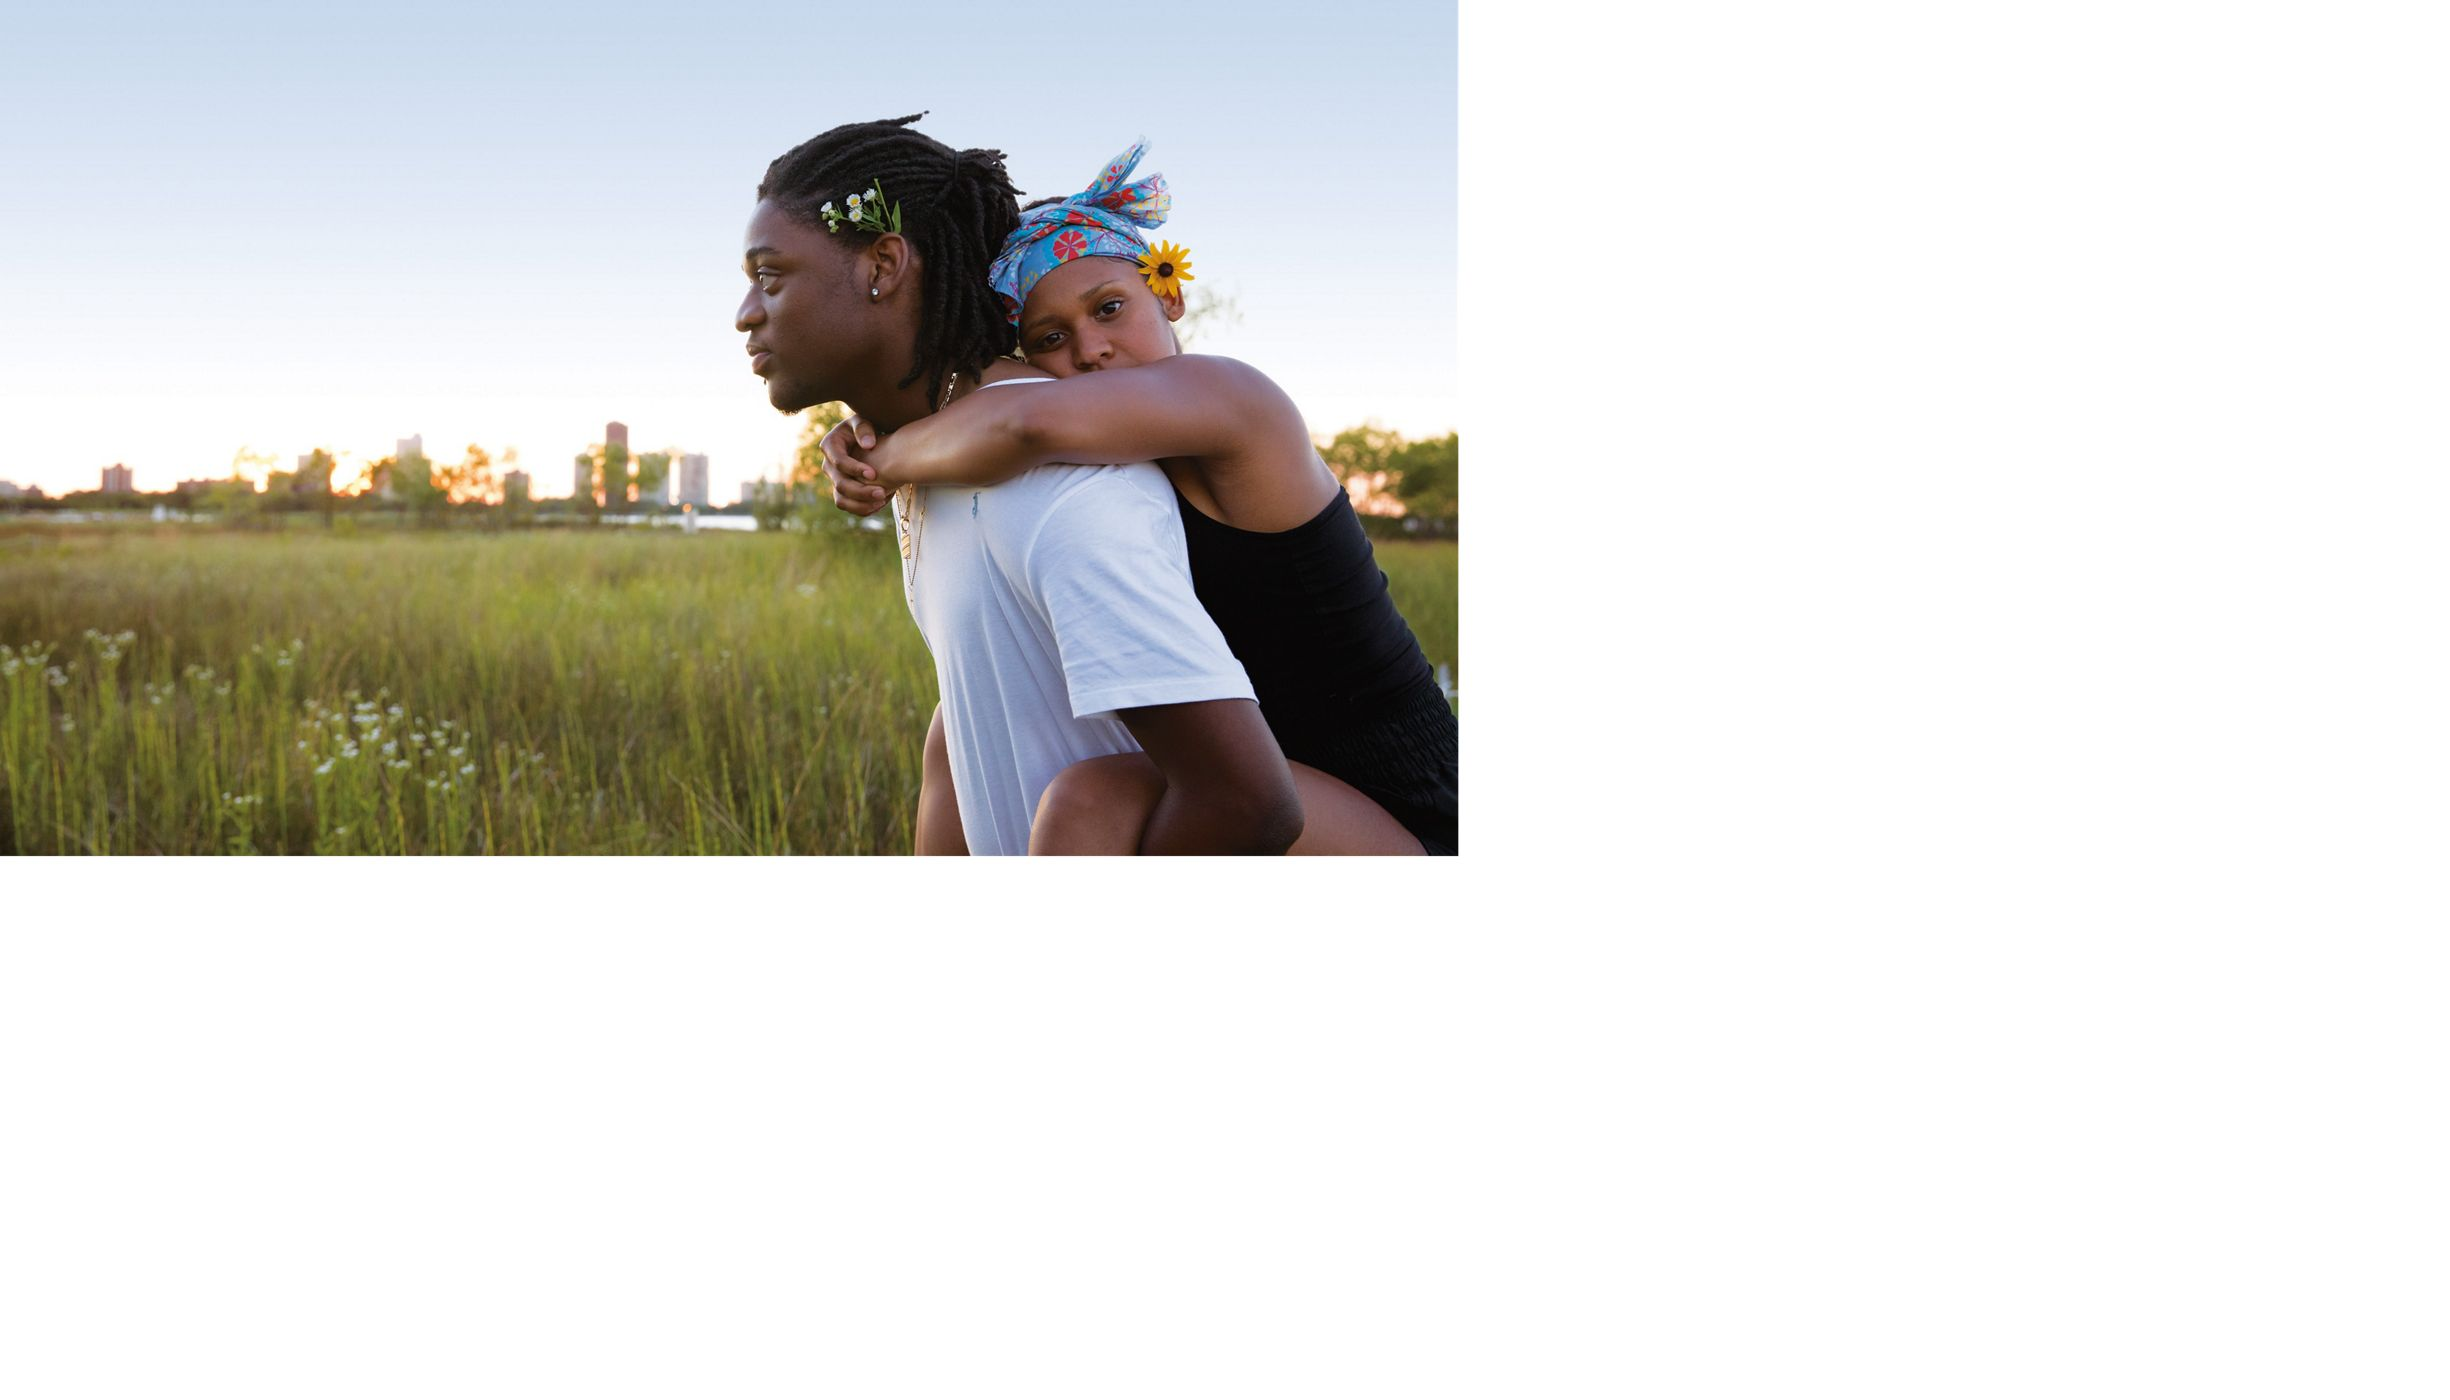 Veasna Johnson and Anthony Okocha celebrate the first day of summer with a picnic at Chicago's Montrose Beach Dunes, Illinois.